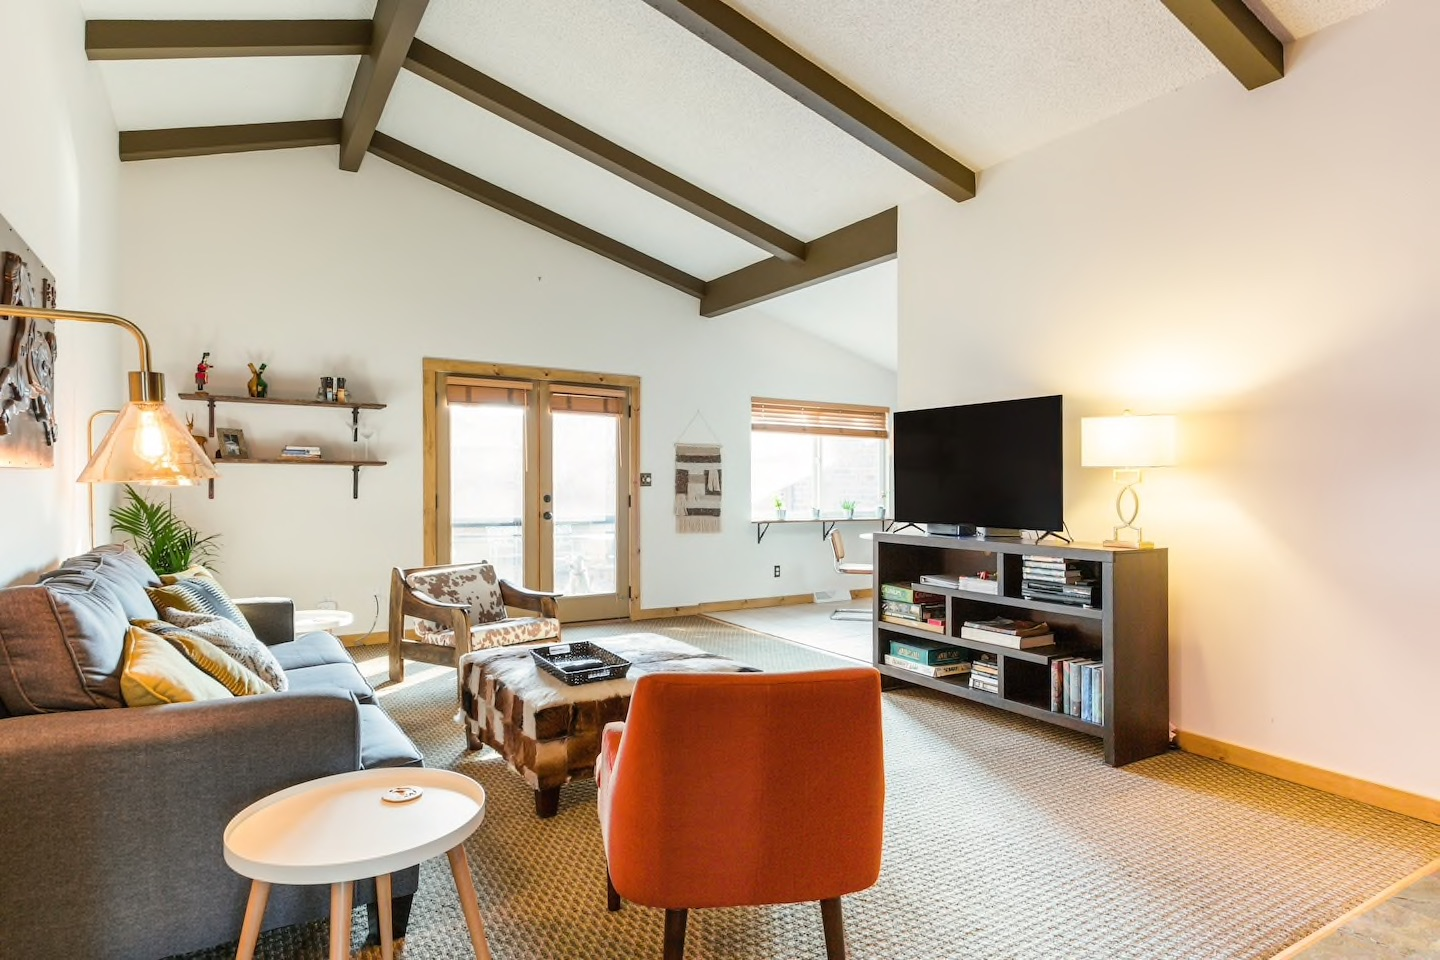 The Stylish Retreat Home is one of the best Airbnbs in Boulder